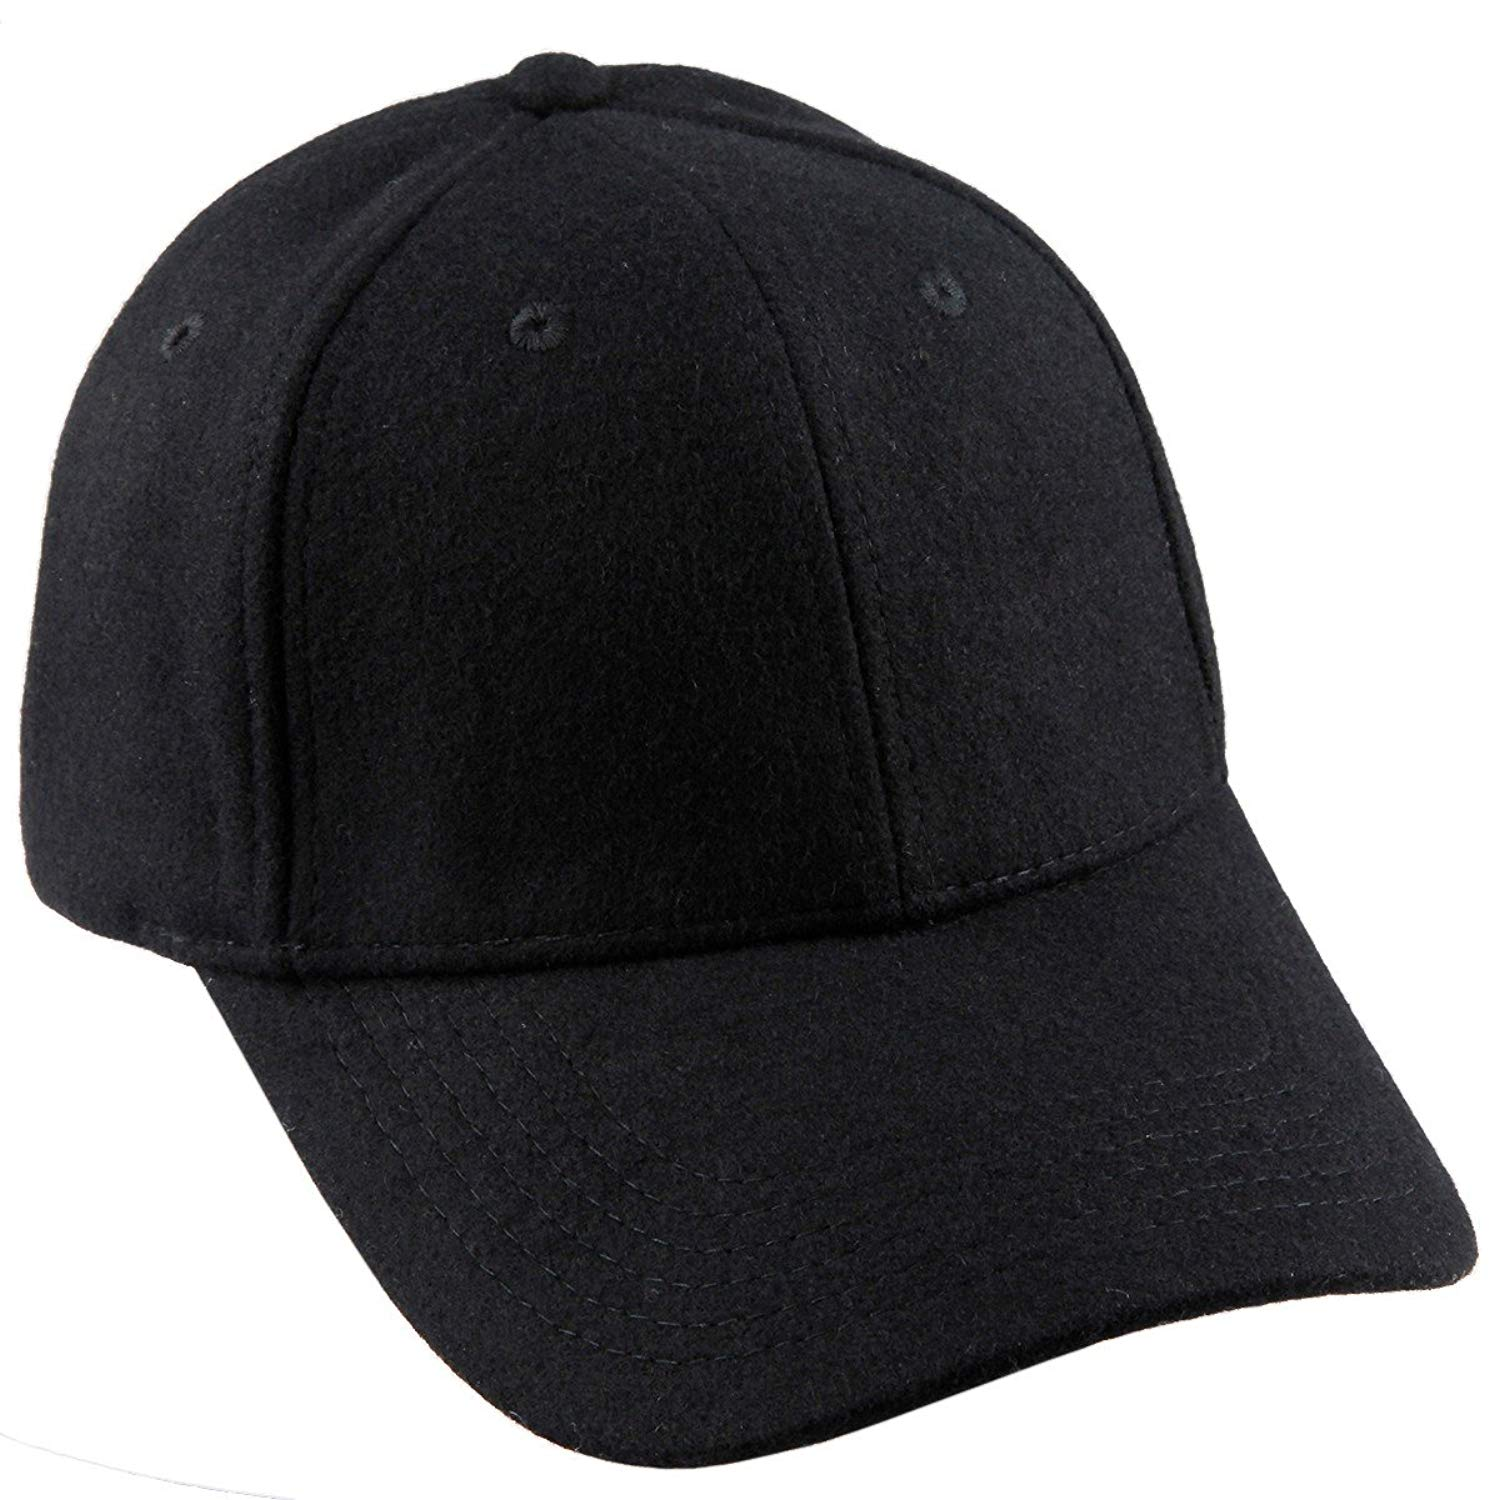 Buy SOLS Unisex Meteor 6 Panel Plain Baseball Cap in Cheap Price on ... c84f9a7529af